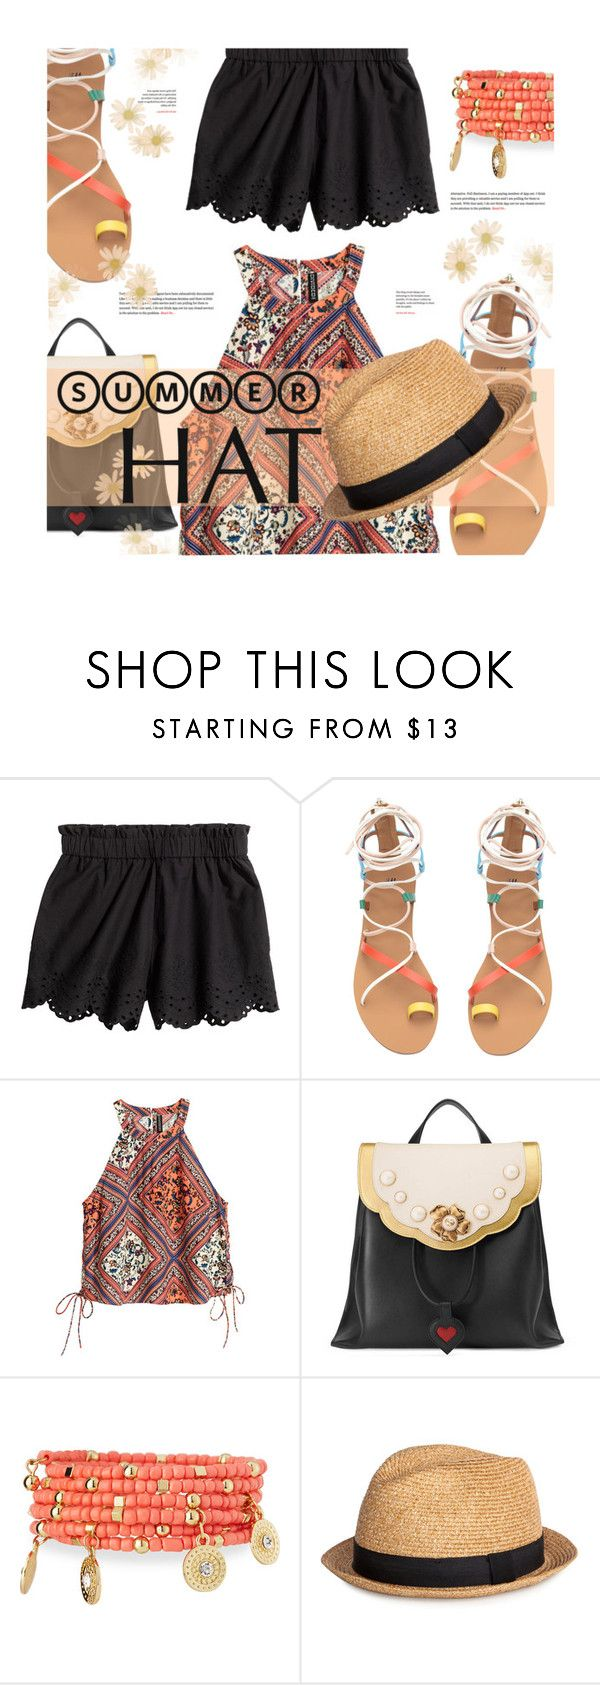 """Top it off: Summer Hats"" by stacey-lynne ❤ liked on Polyvore featuring Gucci and Emily & Ashley"